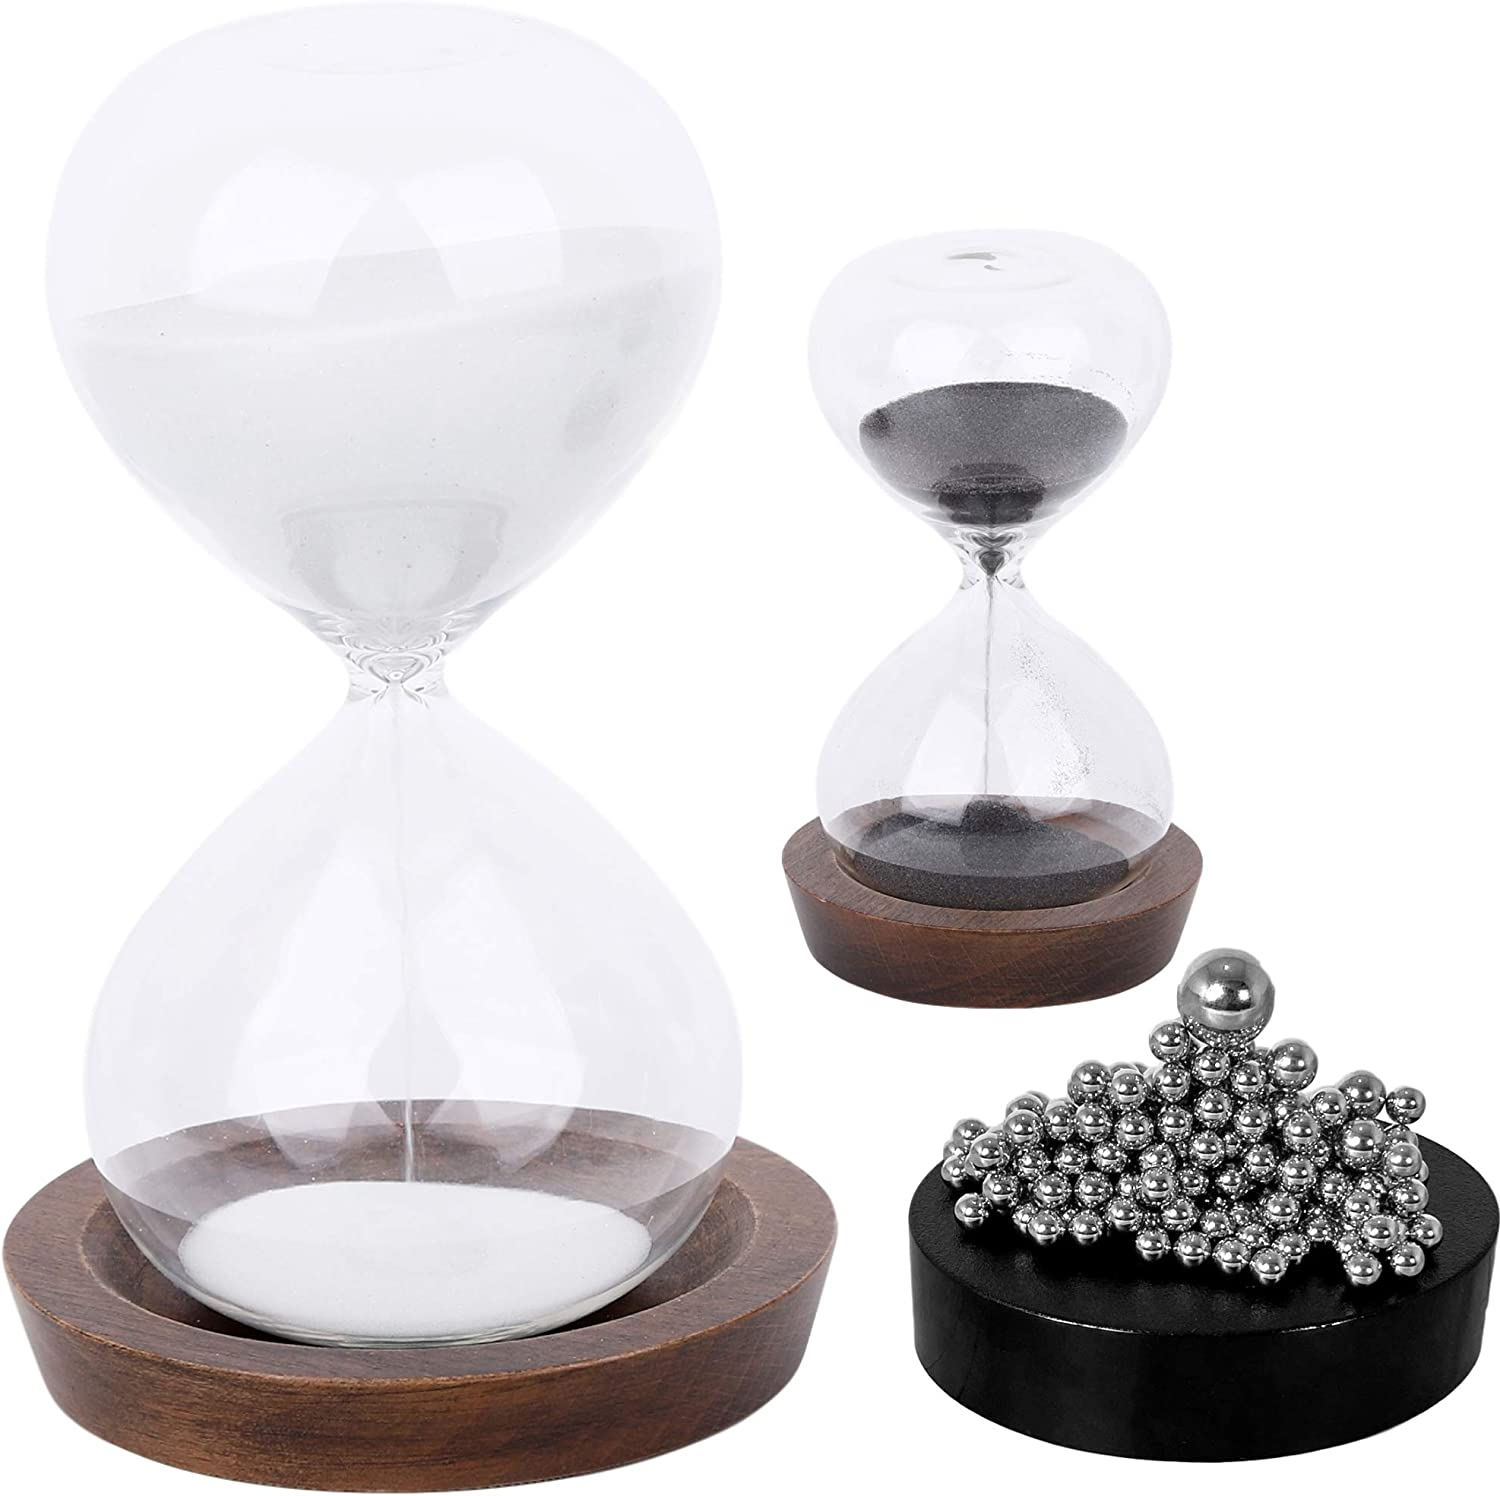 Budgetizer Sand Hourglass Timer Hour Glass– with Magnetic Balls Desk Toy Sculpture – 30 min and 5 Minute Sand Clock for Office, Home, Desk Decor (Black and White)